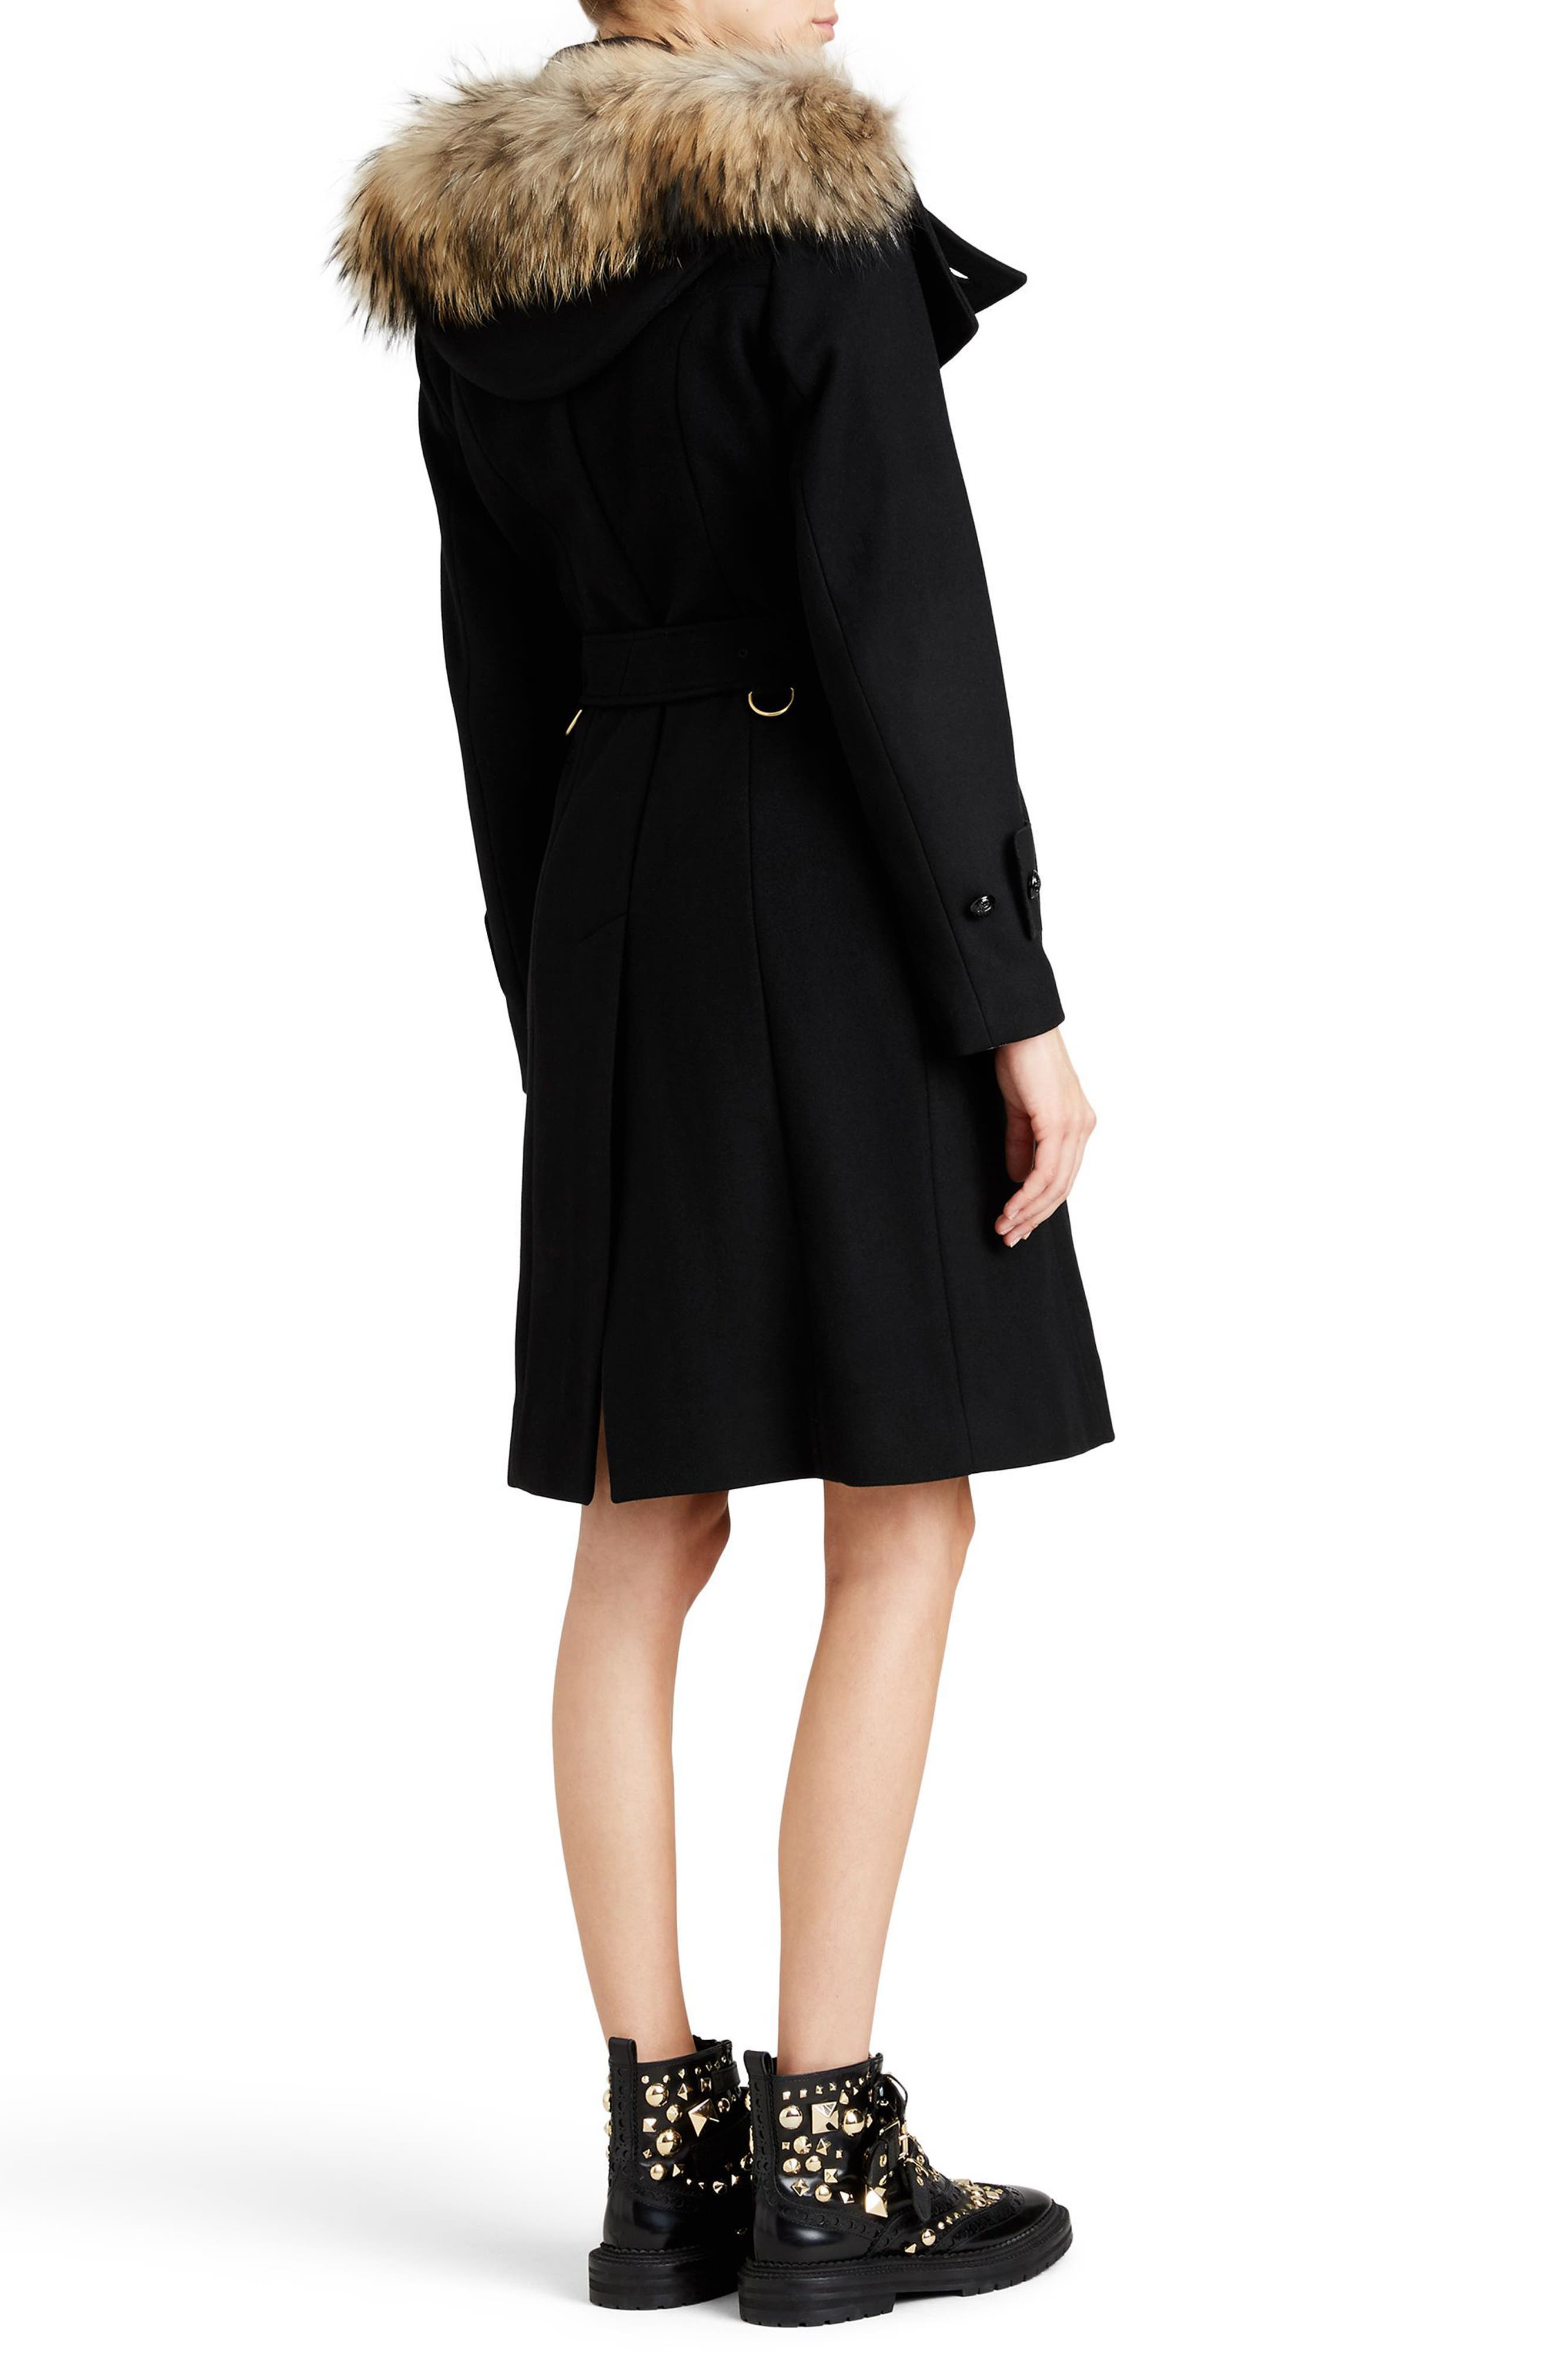 Claybrooke Wool Blend Coat with Removable Genuine Fox Fur Trim,                             Alternate thumbnail 8, color,                             001